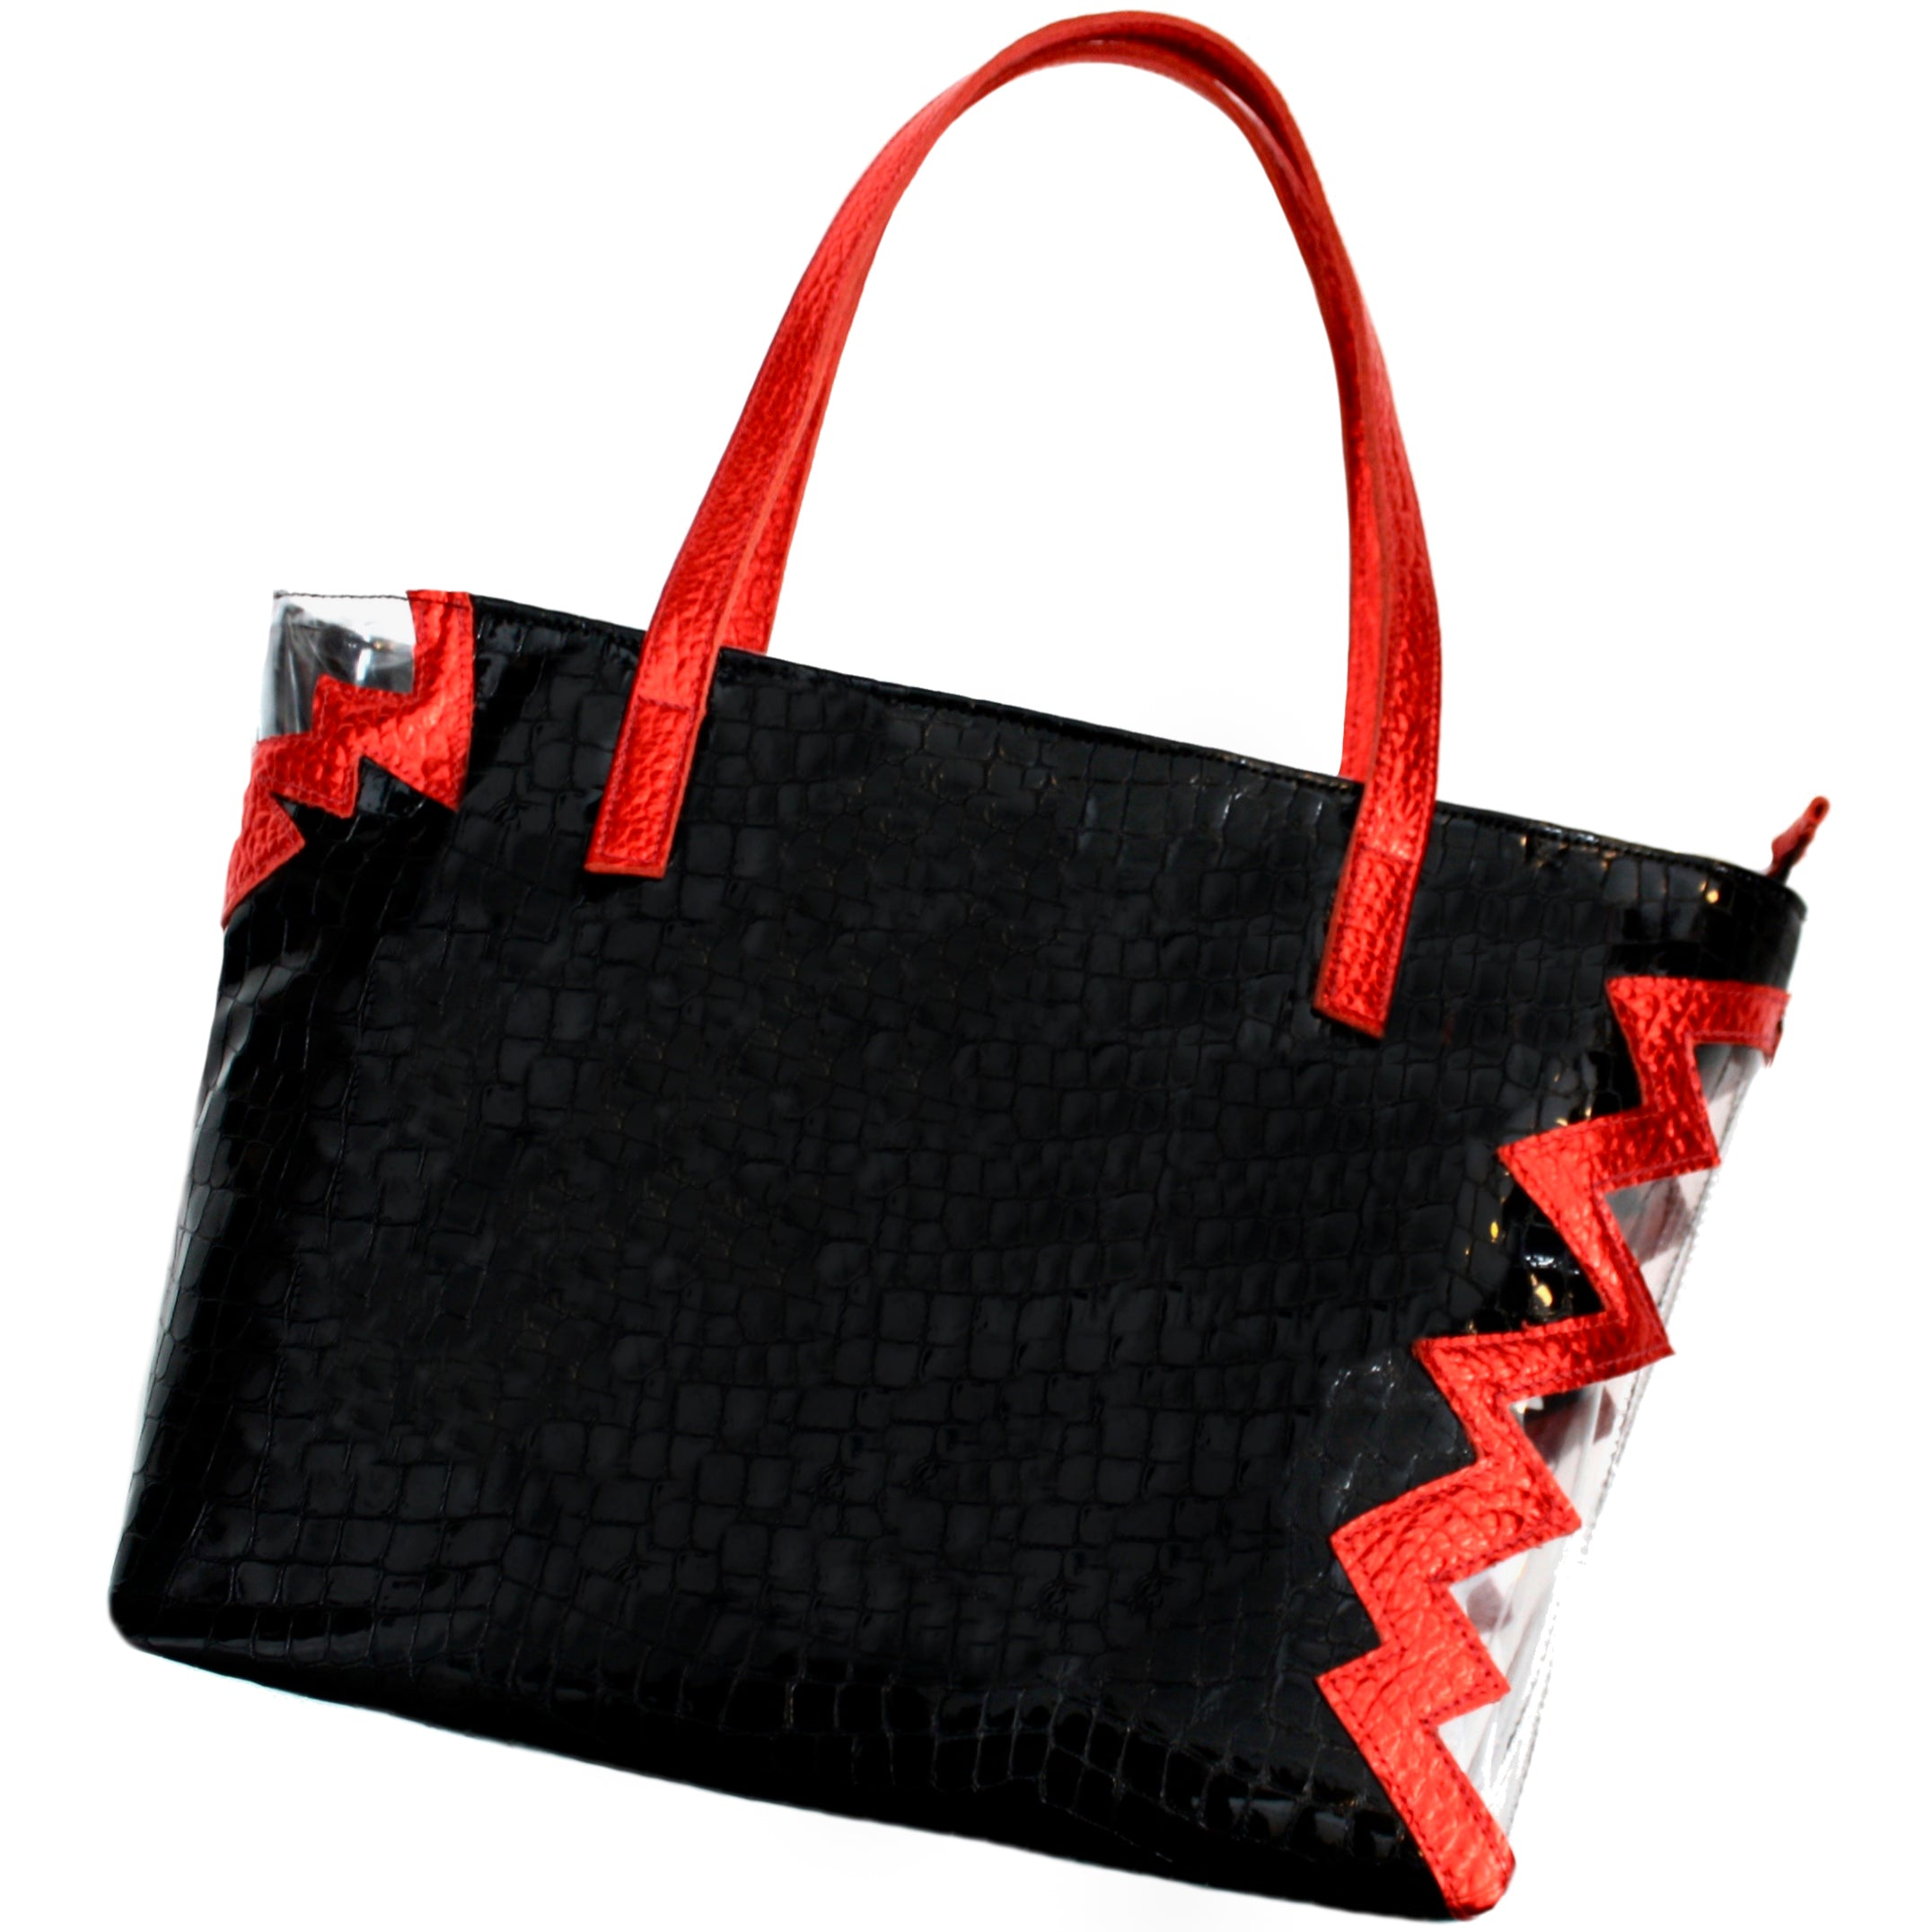 Jagged Edges Tote